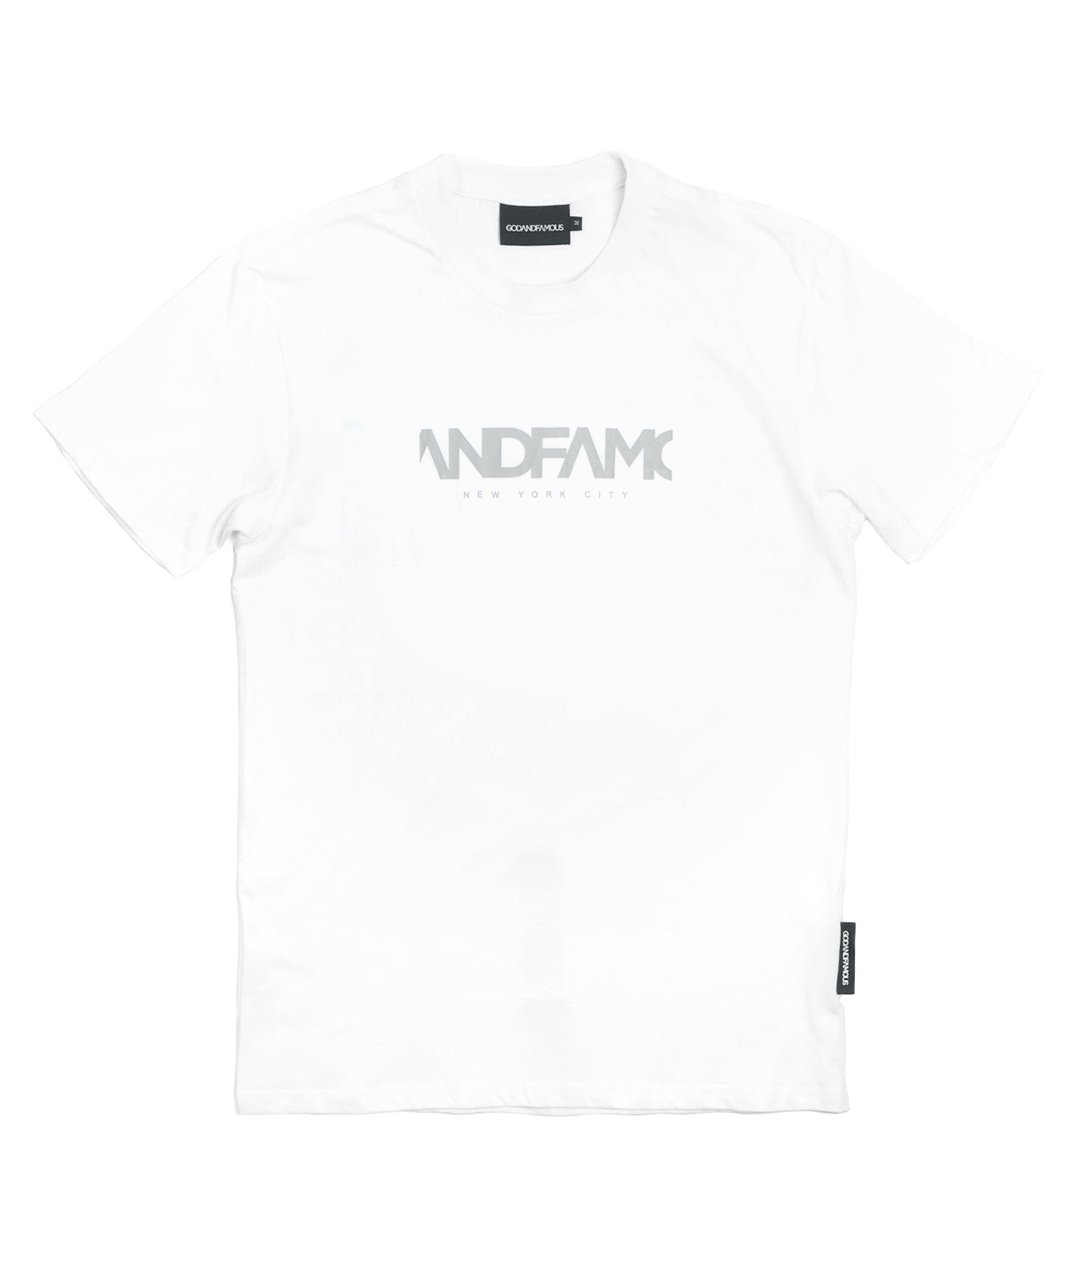 GOD & FAMOUS Team T-shirt (White)